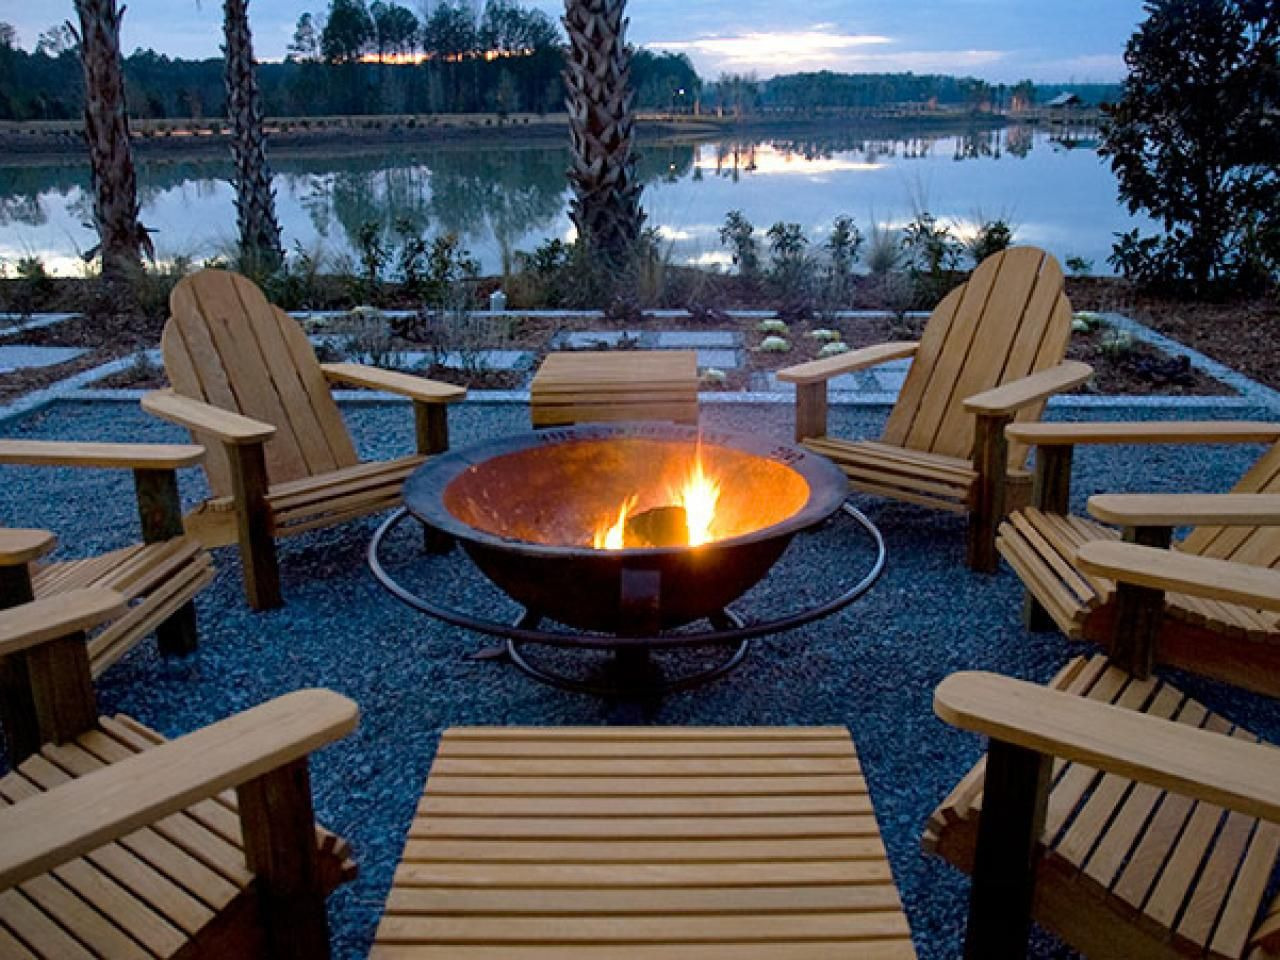 66 fire pit and outdoor fireplace ideas outdoor fire fireplace